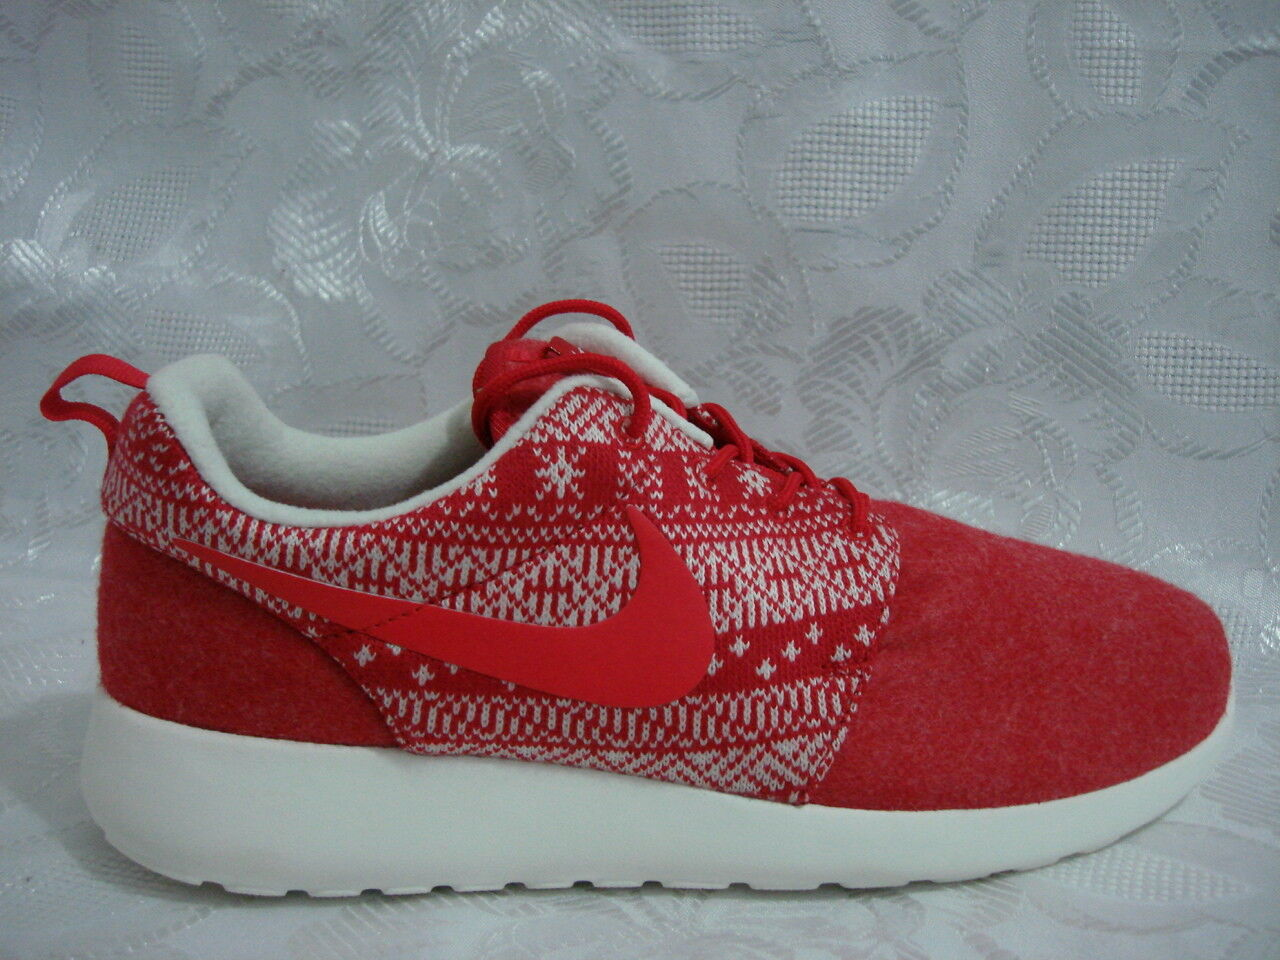 WOMENS NIKE ROSHE ONE WINTER W 11 M 9.5 UNIVERSITY RED CHRISTMAS SWEATER AIR MAX